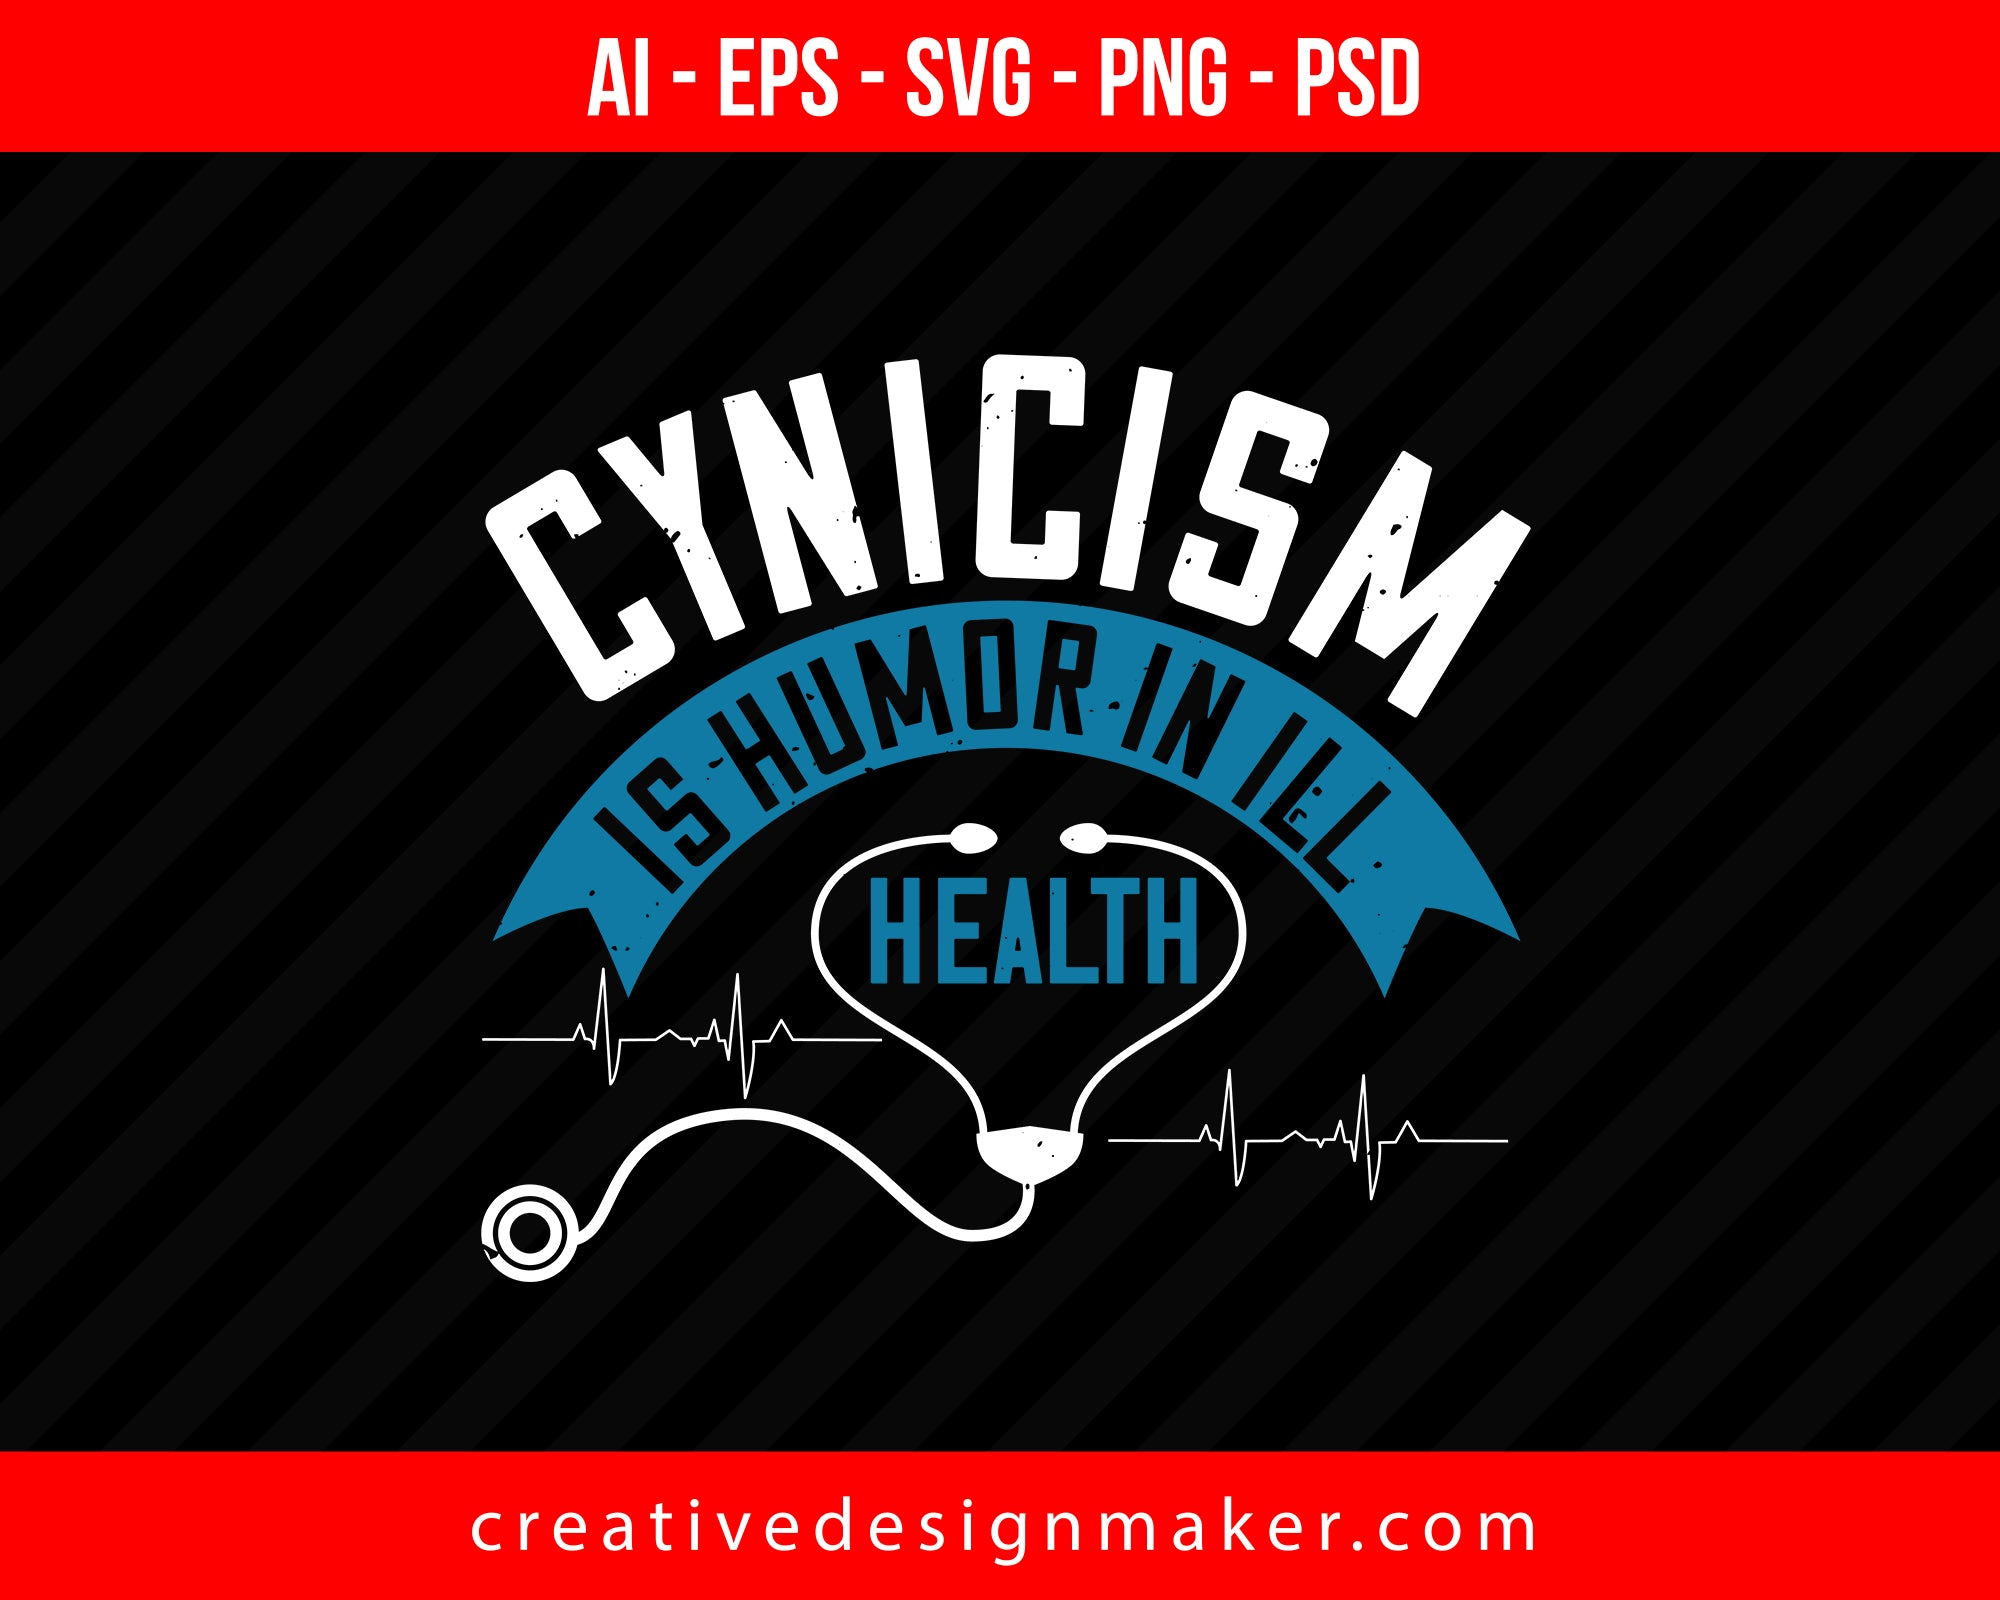 Cynicism Is Humor In Ill World Health Print Ready Editable T-Shirt SVG Design!